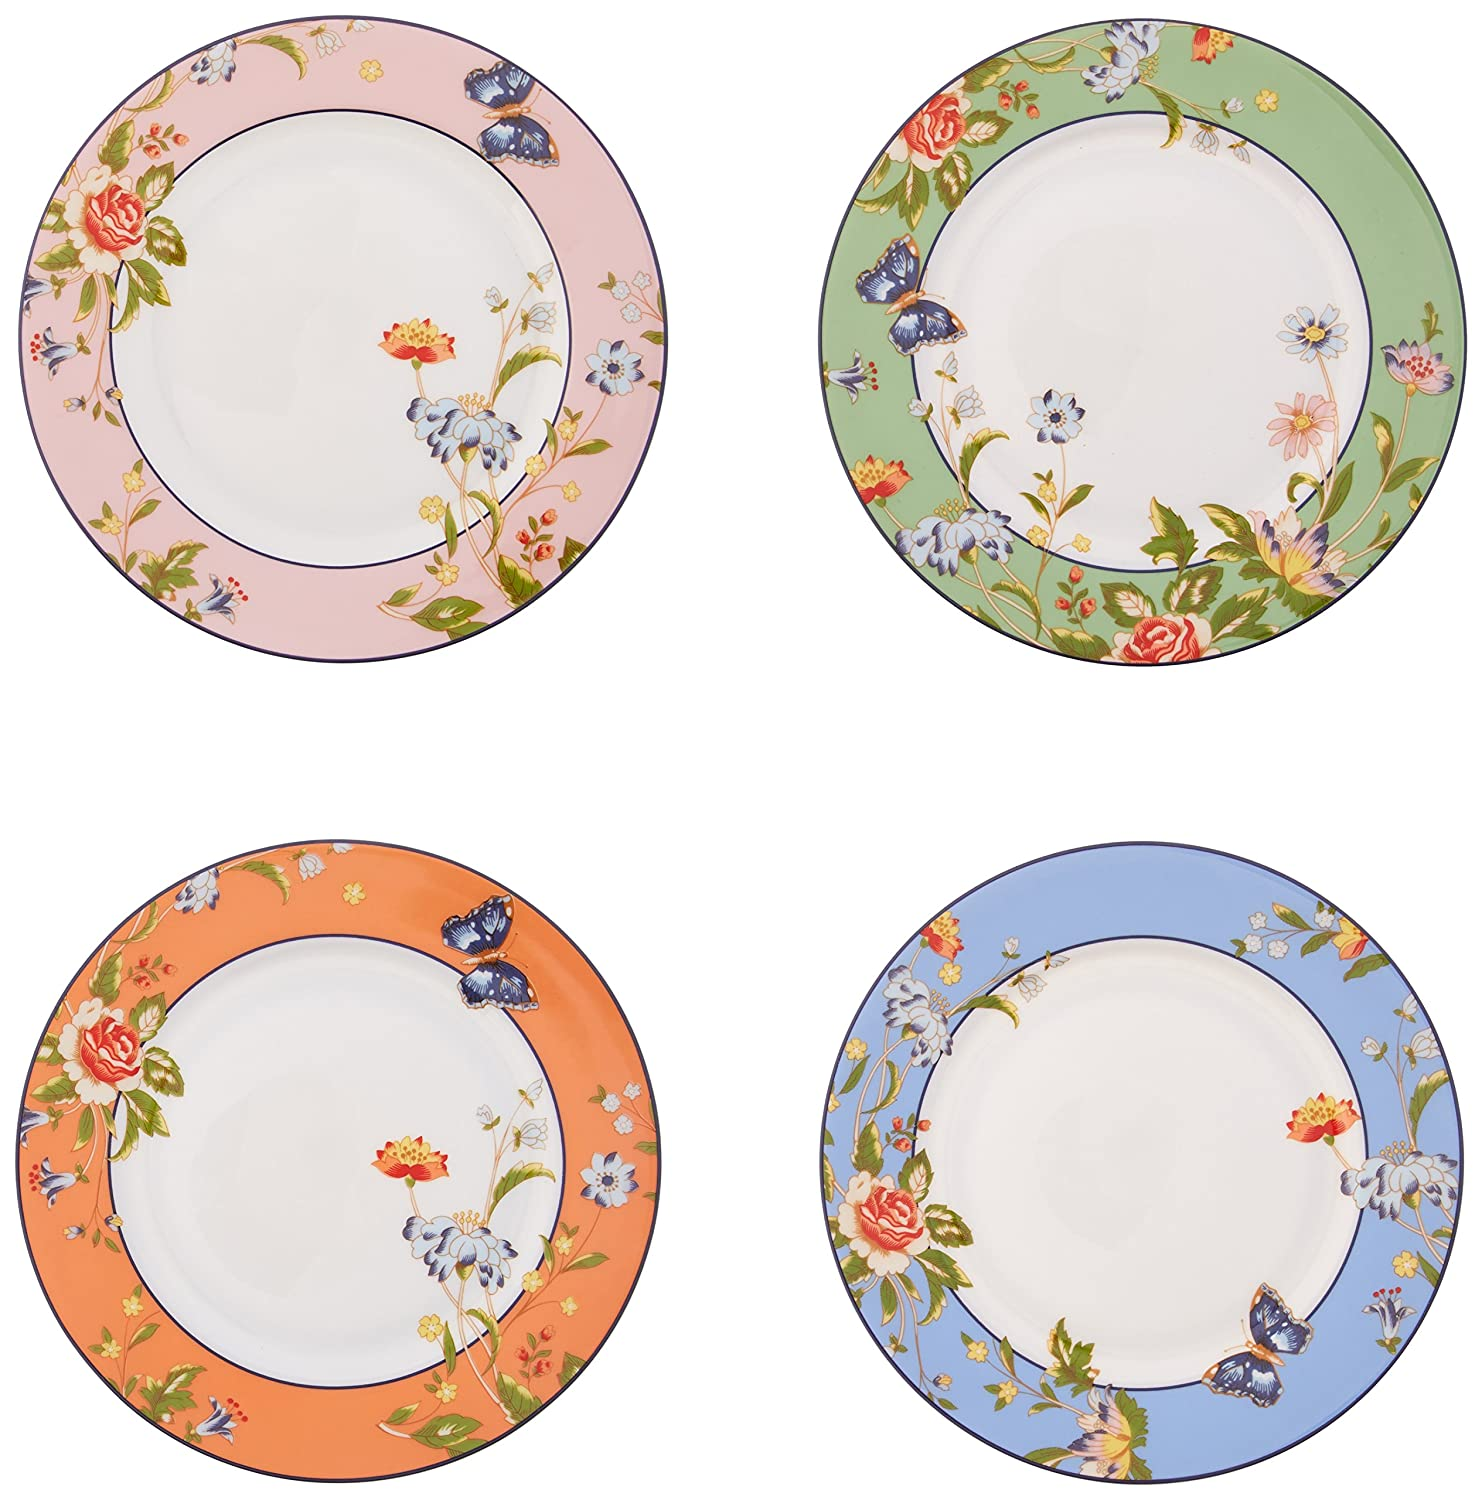 Belleek Cottage Garden Mixed Plates, Multicolor CLAS20004